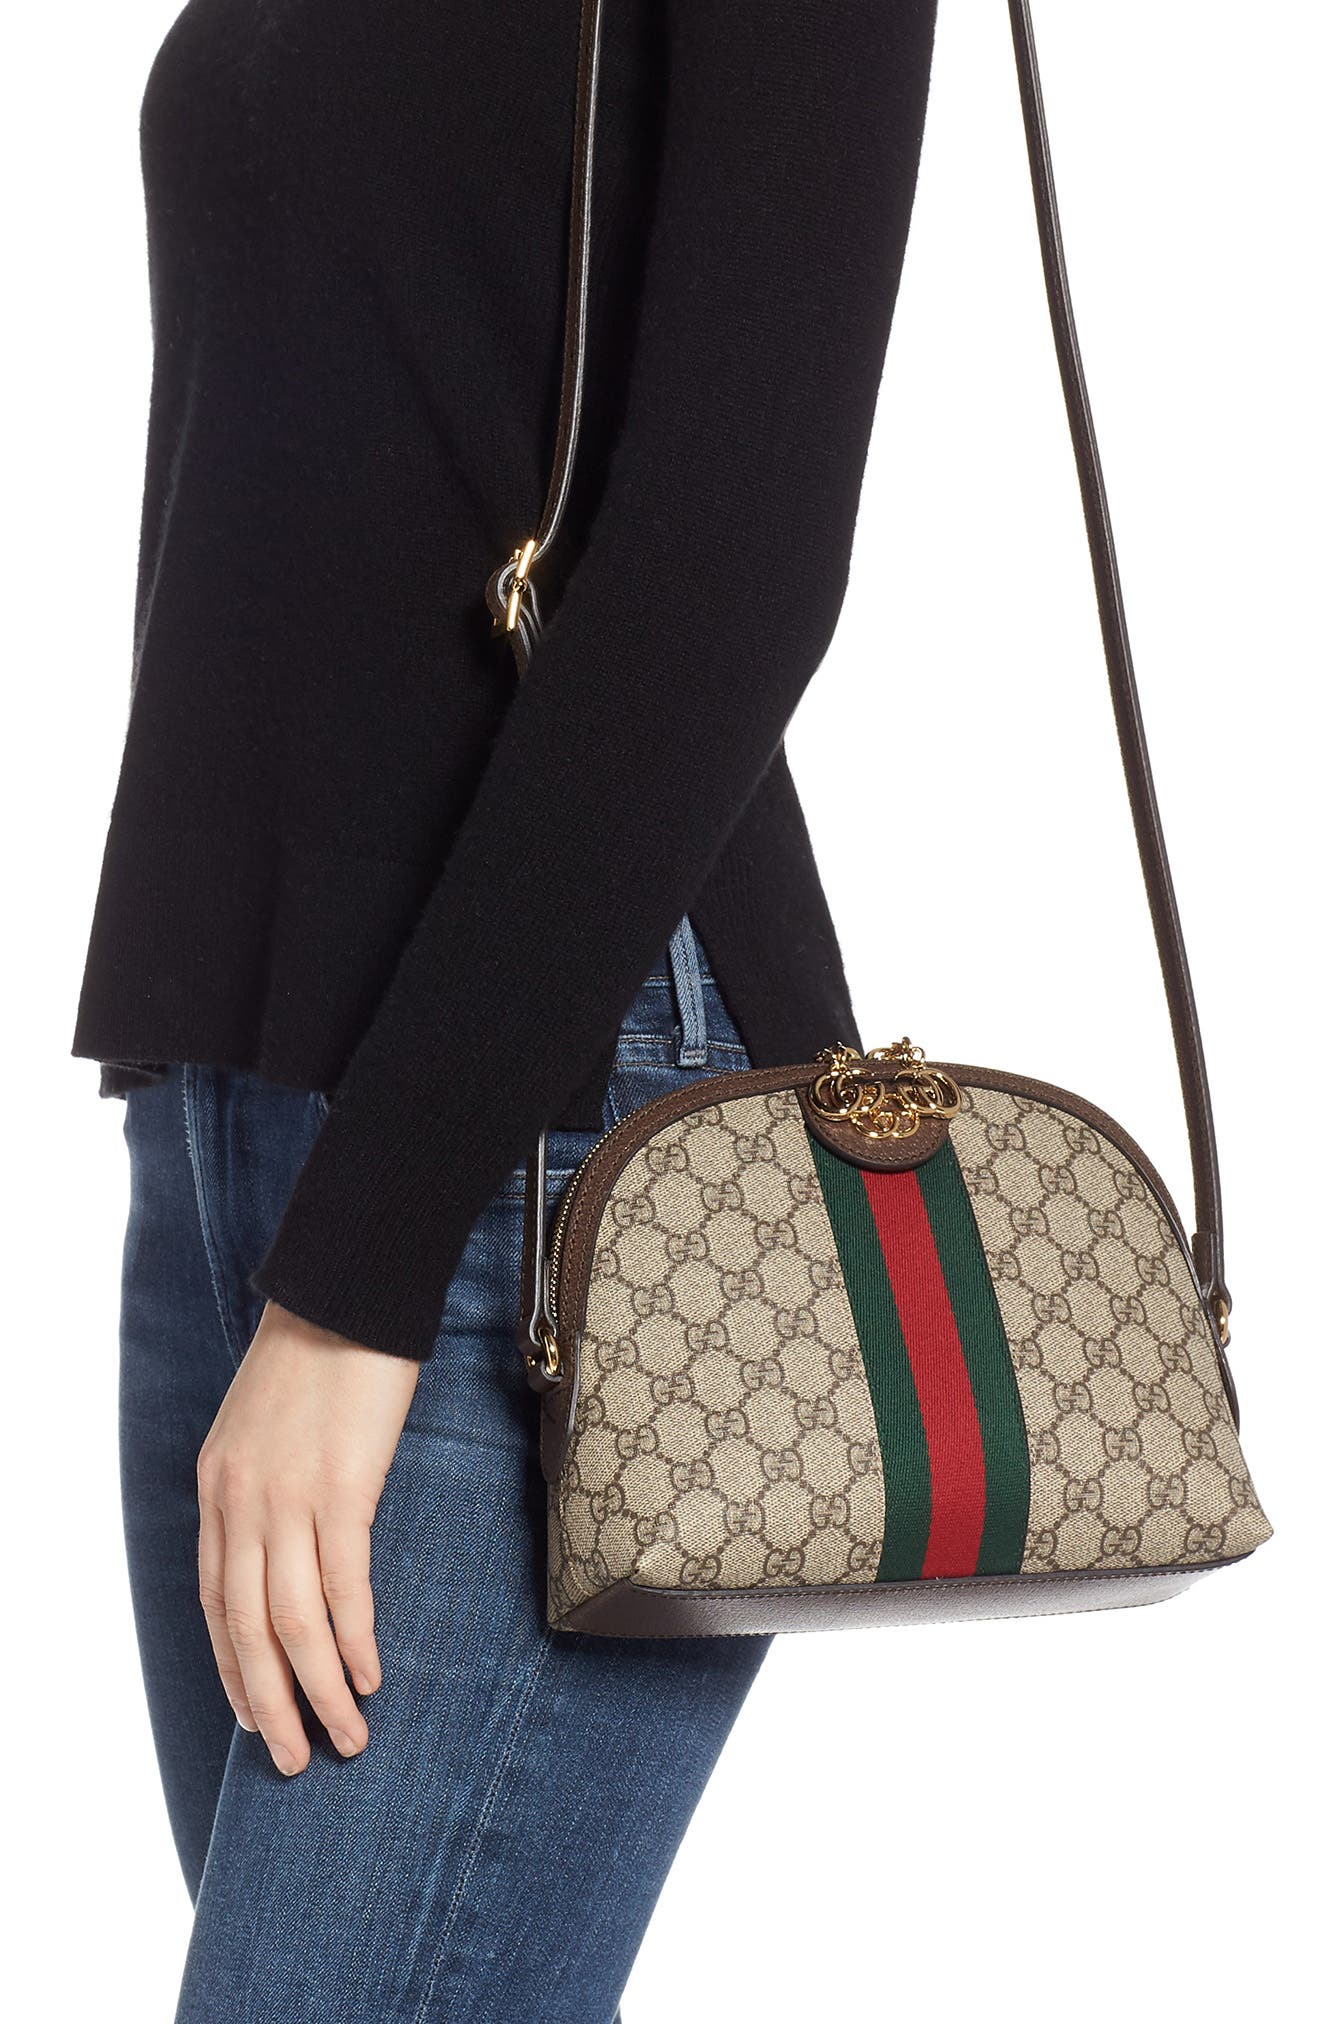 GUCCI, GG Supreme Canvas Shoulder Bag, Alternate thumbnail 2, color, BEIGE EBONY/ NERO/ RED